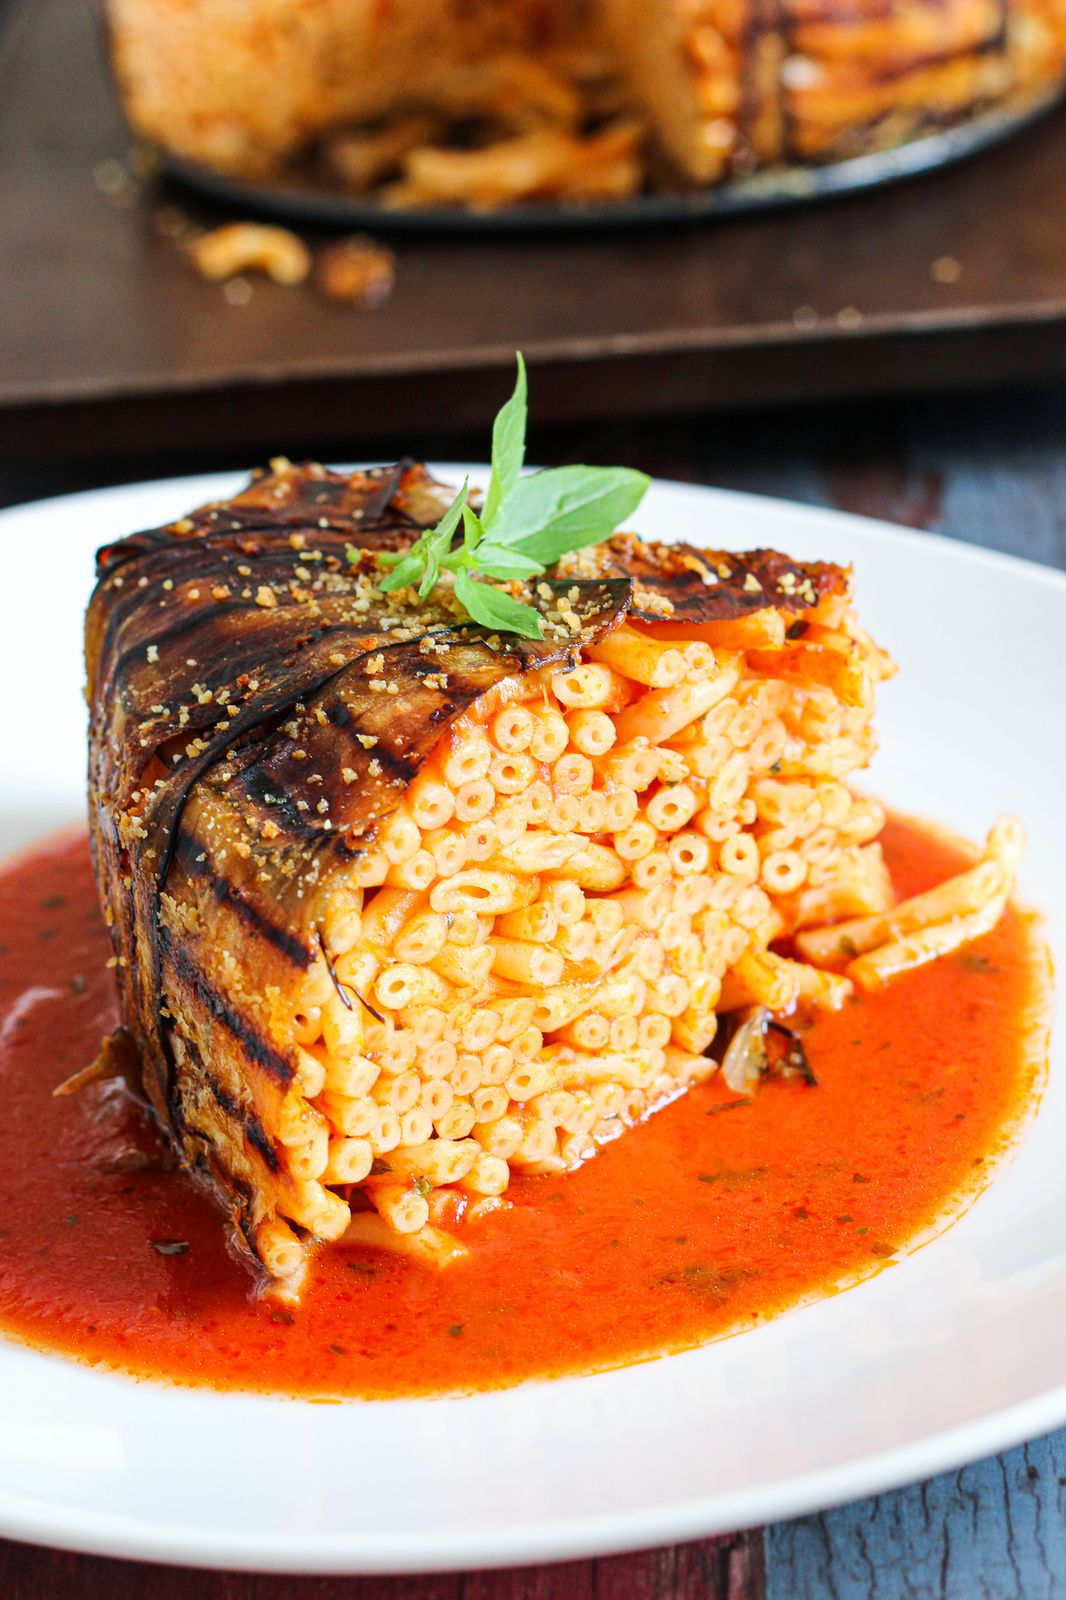 Timbale d'aubergines aux bucatini